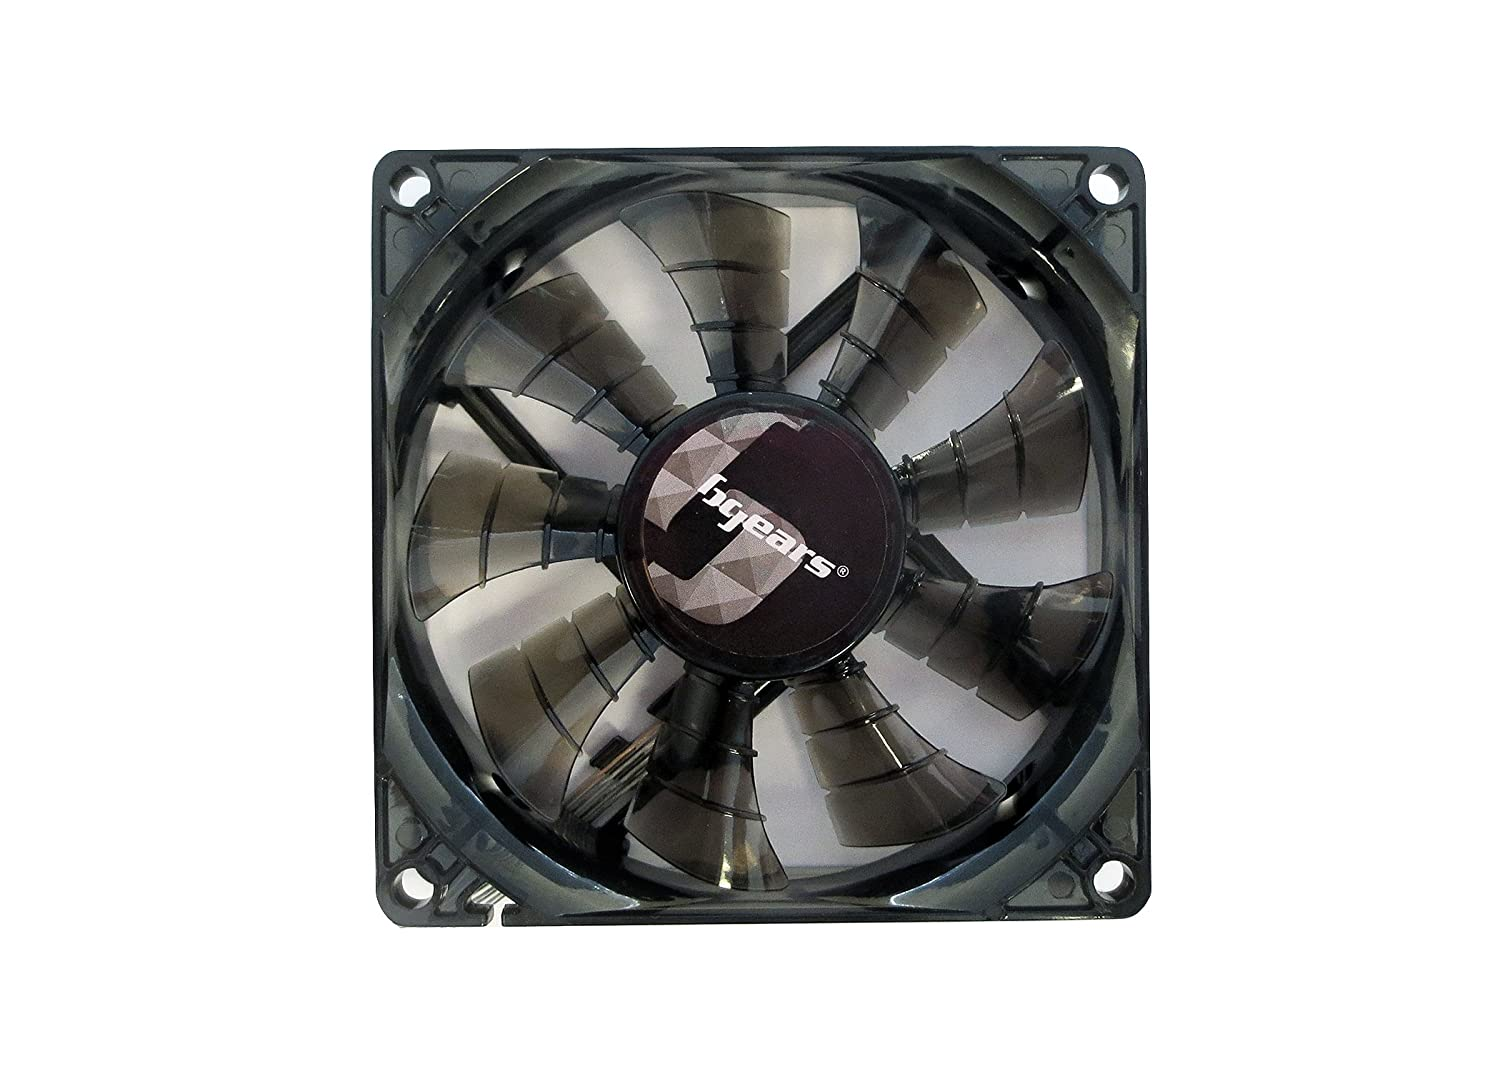 Bgears 90 mm 2 Ball Bearing High Speed High Performance Fan, Translucent Black (b-PWM 90 Black 2ball)